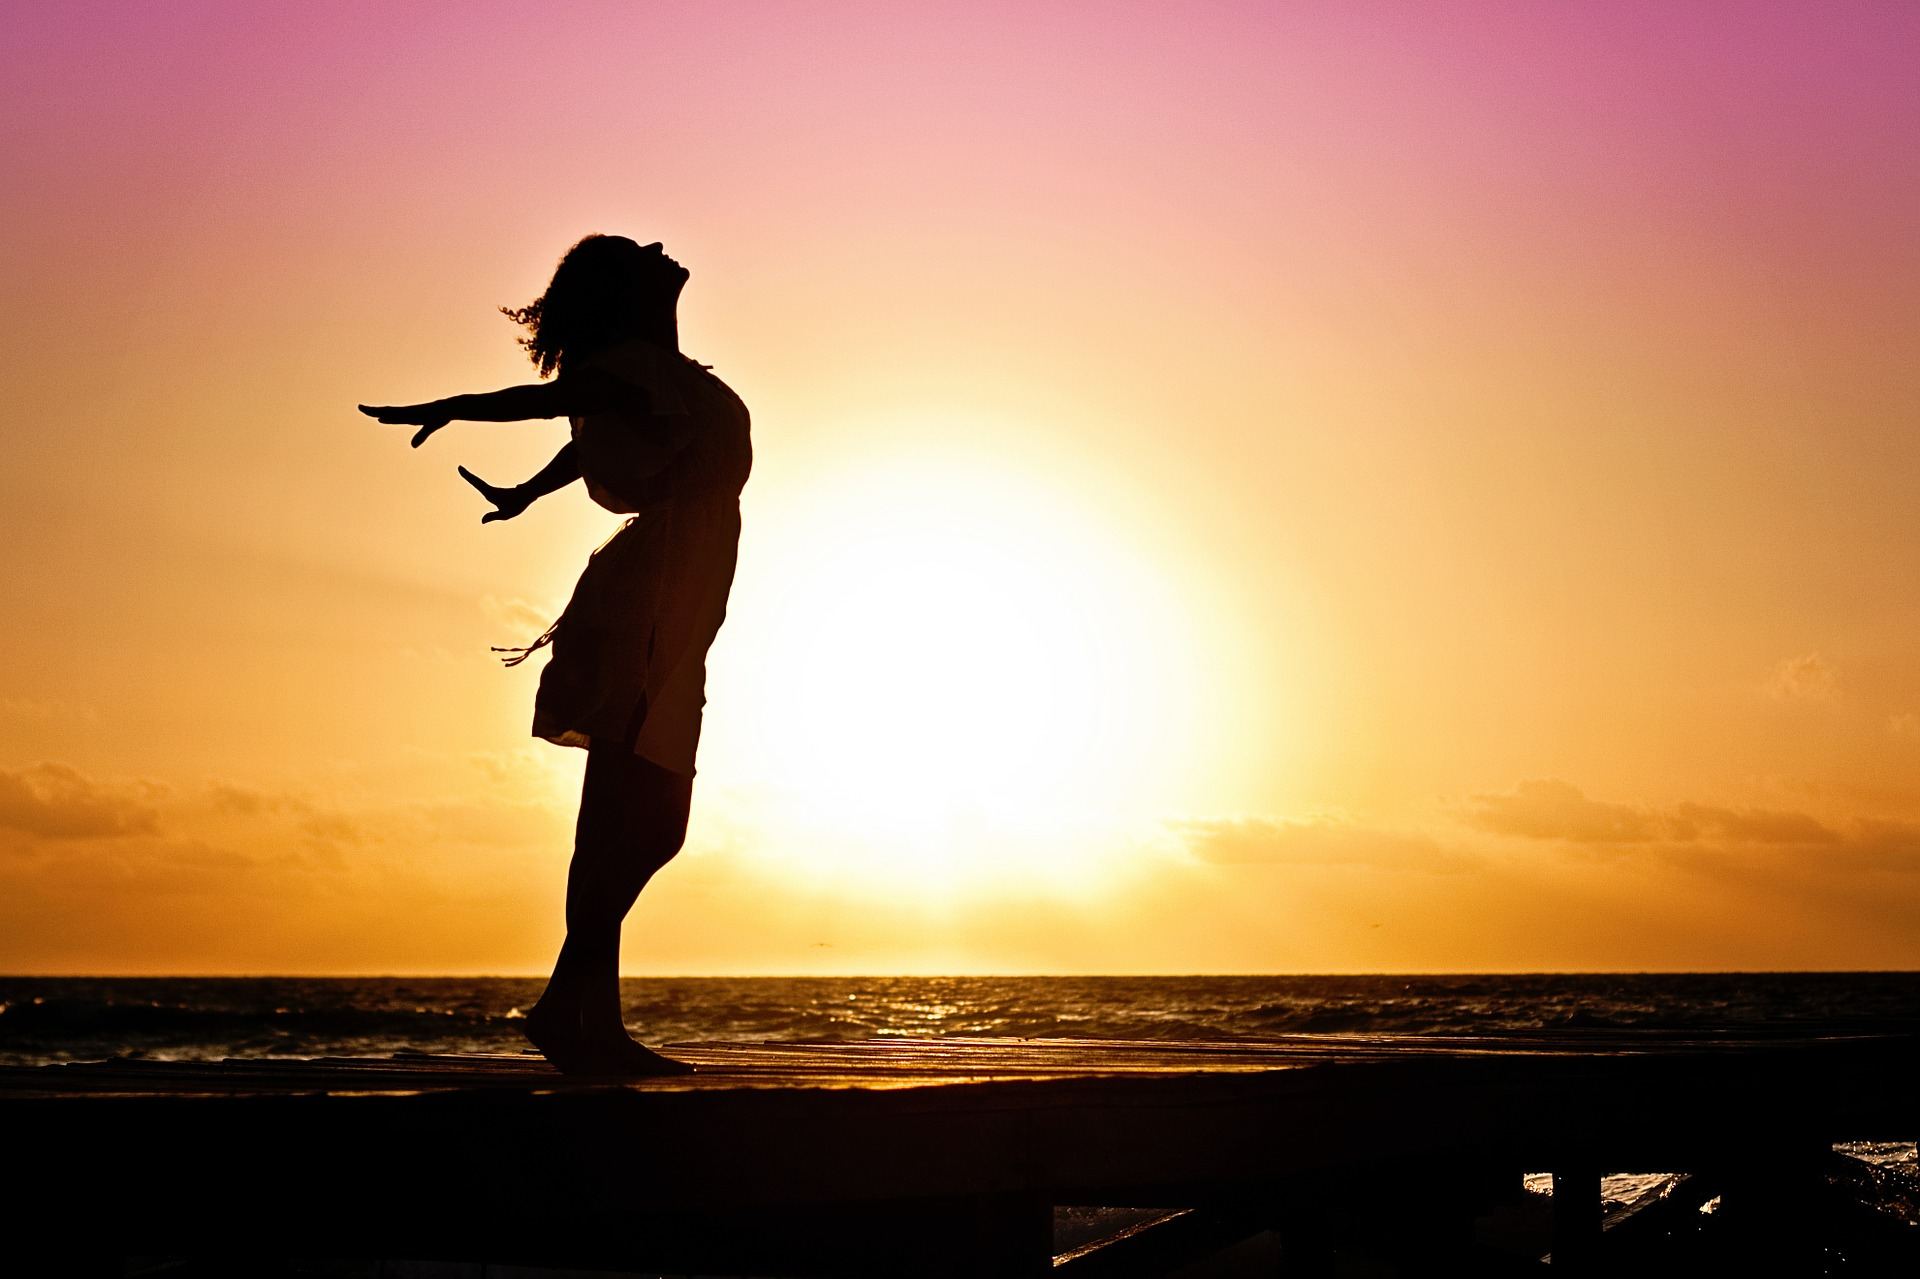 Woman in silhouette against the sunset